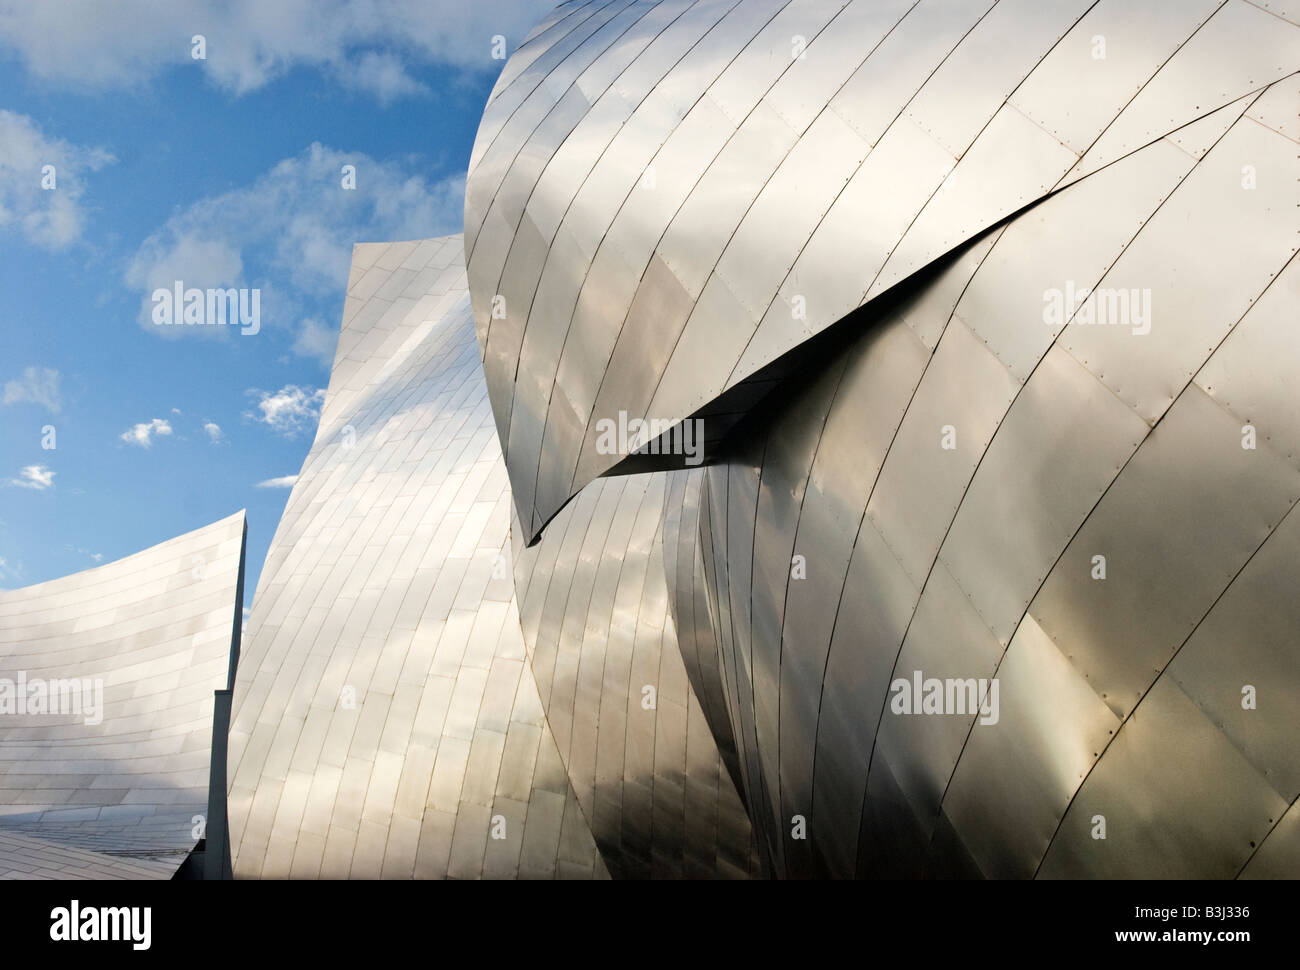 The Richard B Fisher Center for the Performing Arts at Bard College - Stock Image